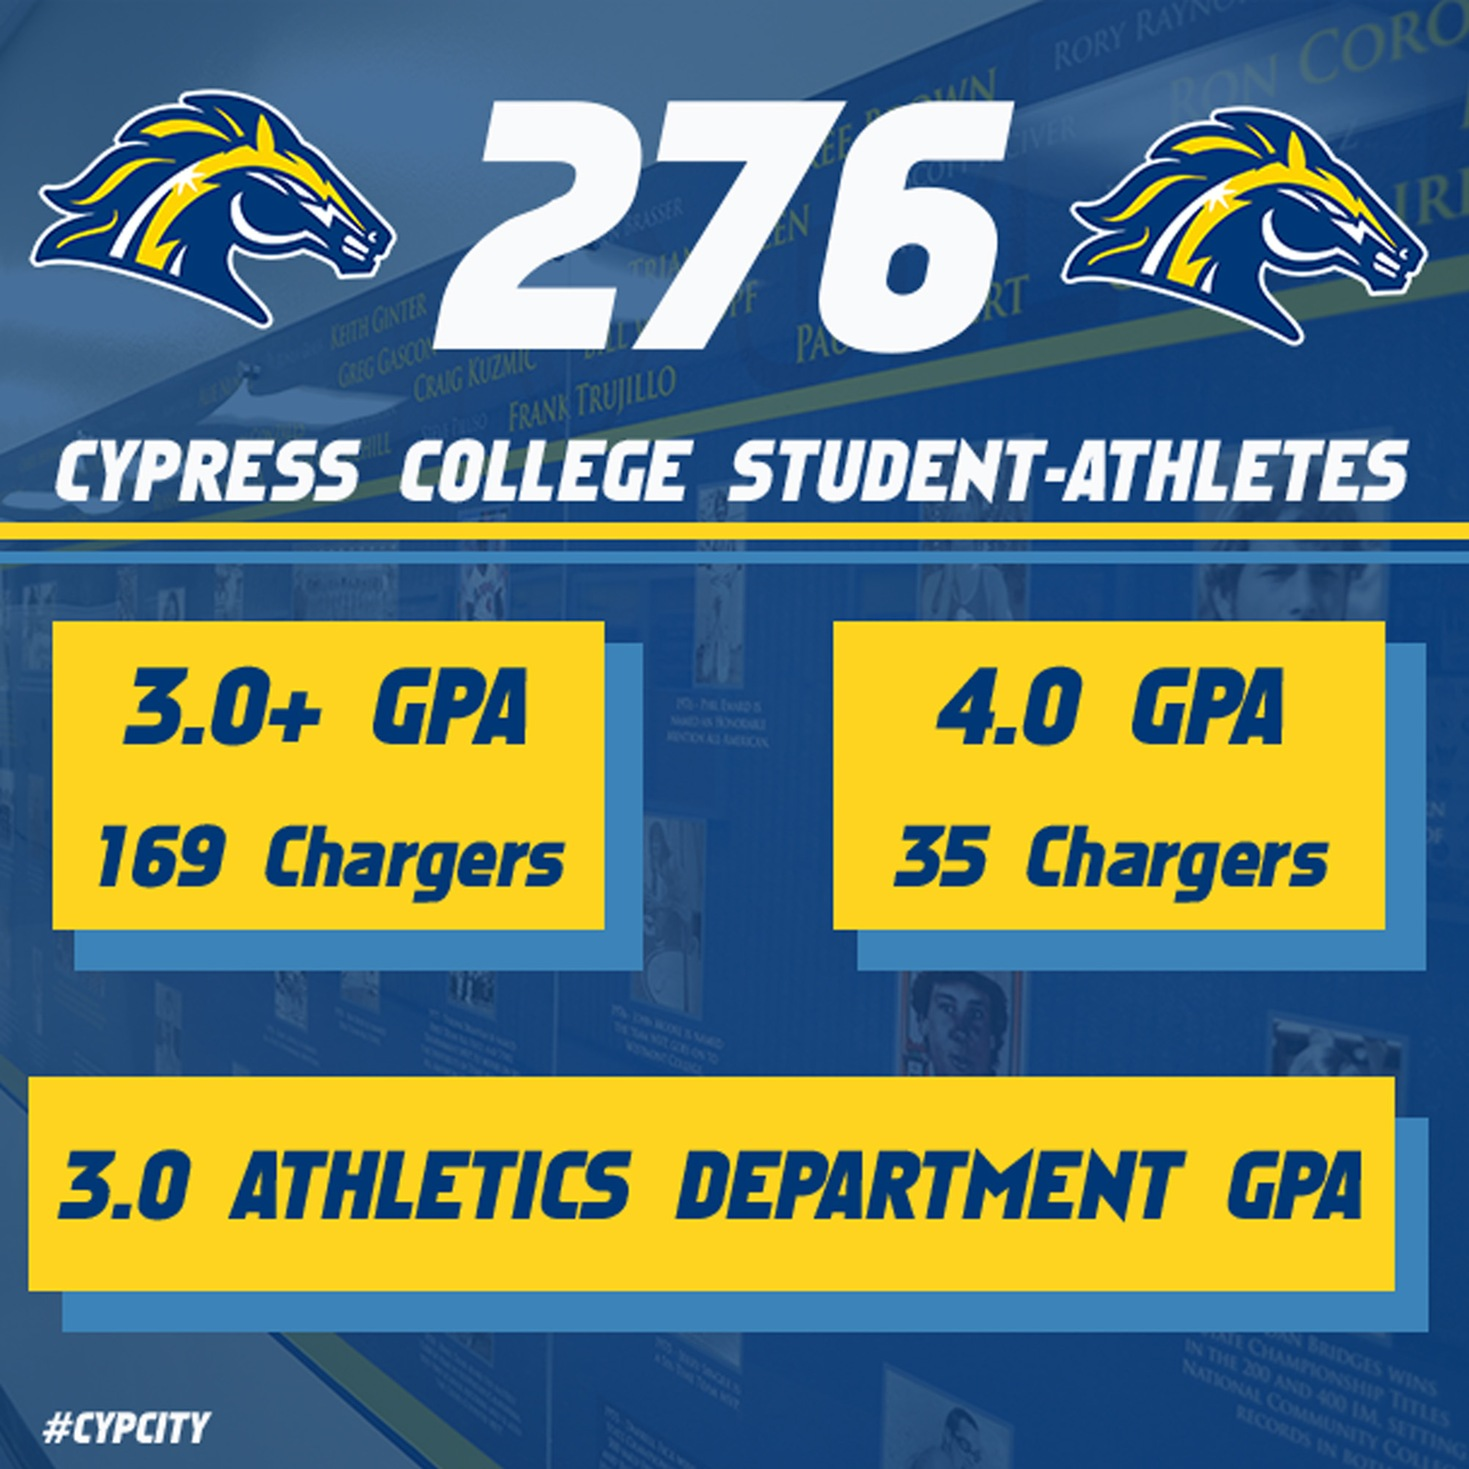 Cypress College Student Athletes Set New Standard for Academic Performance